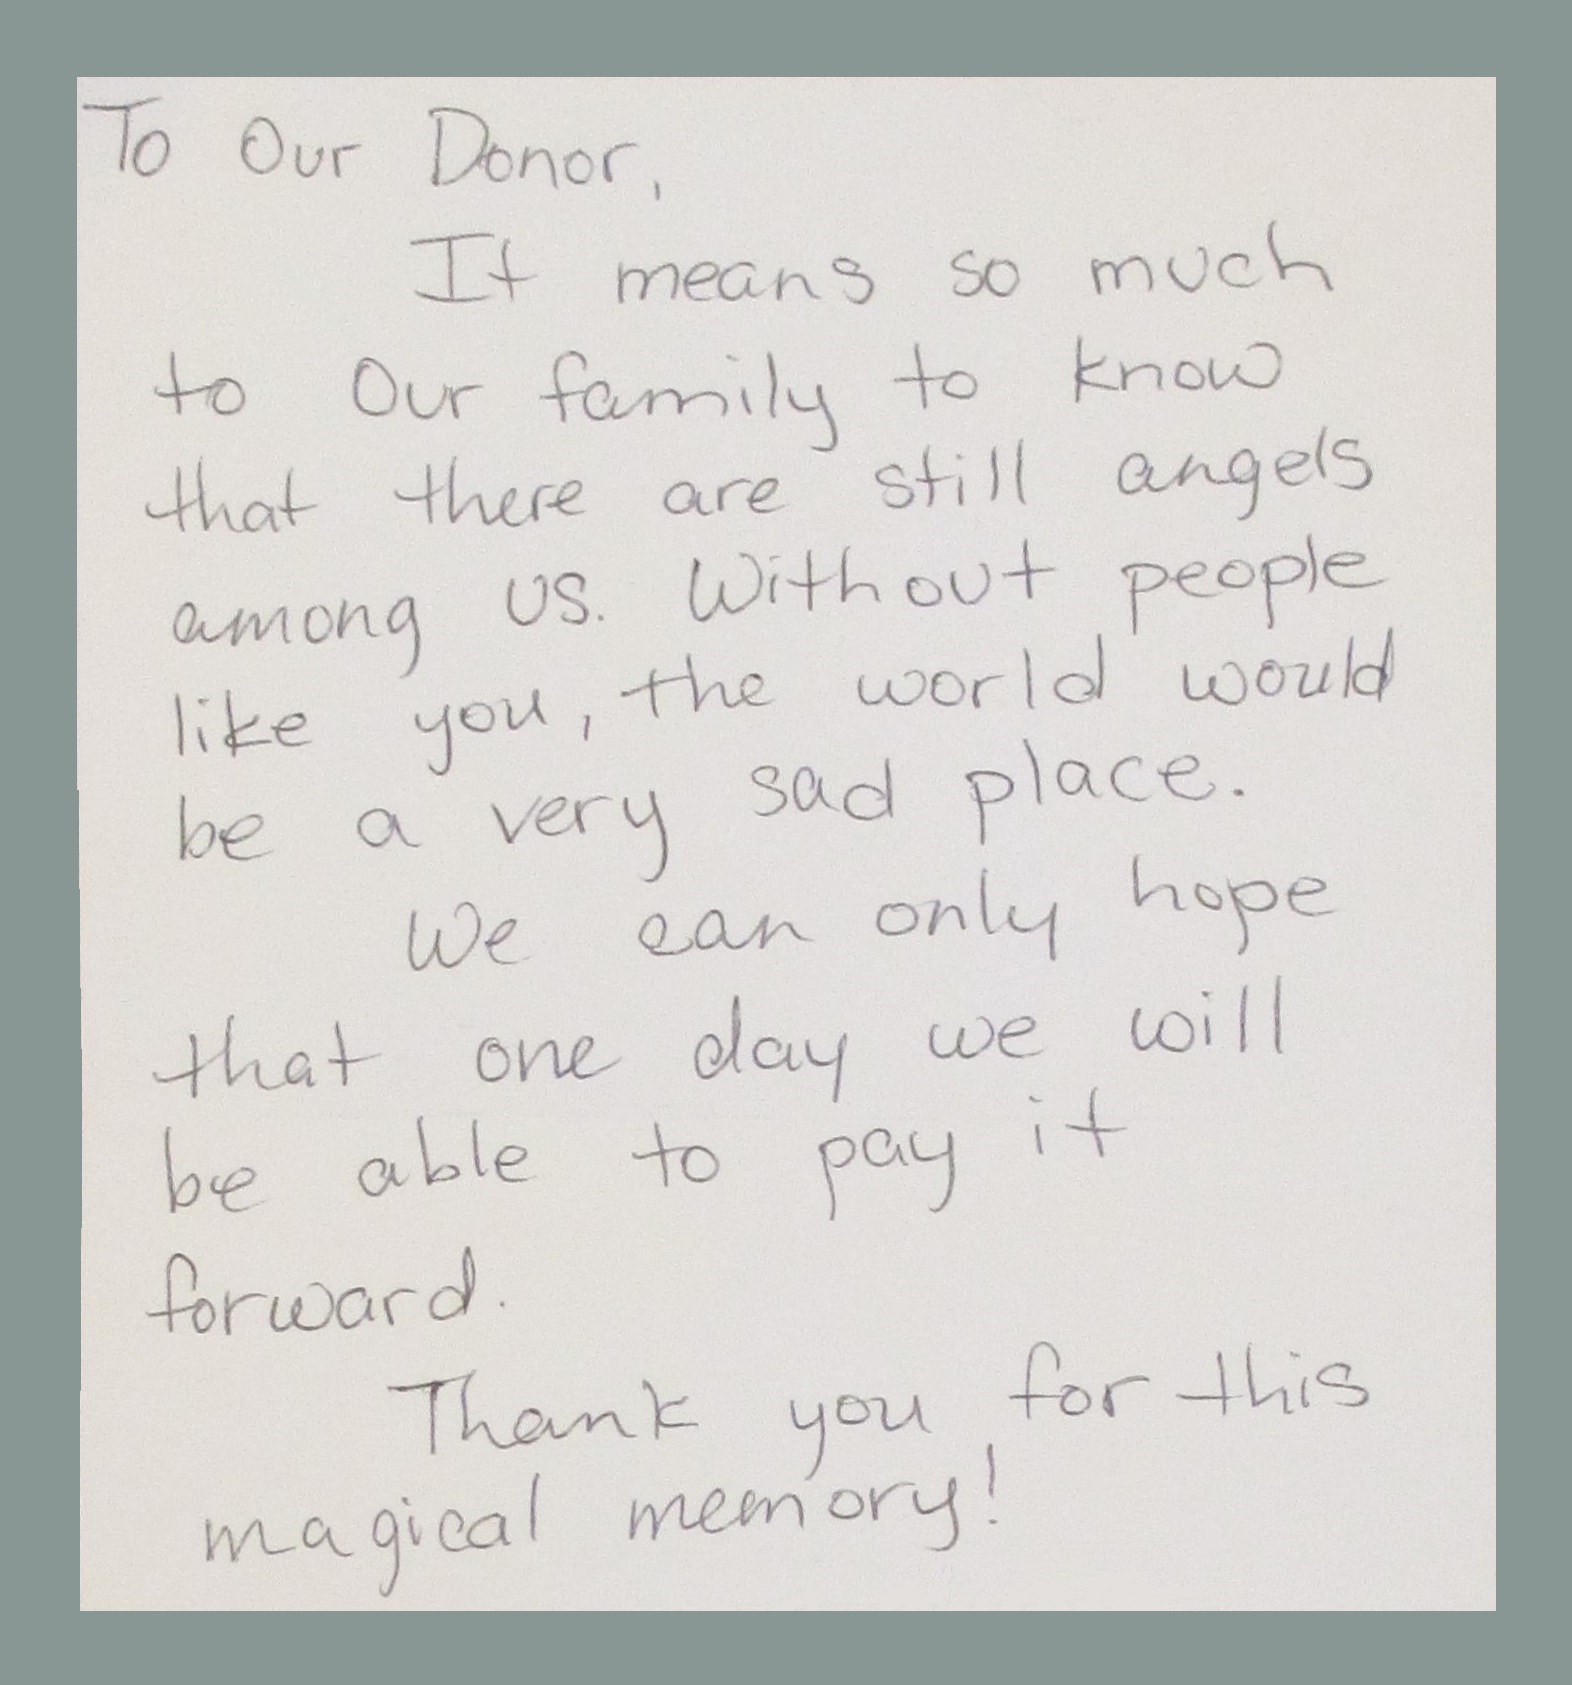 CPCD adopted family thank you letter – The Woman's Club of